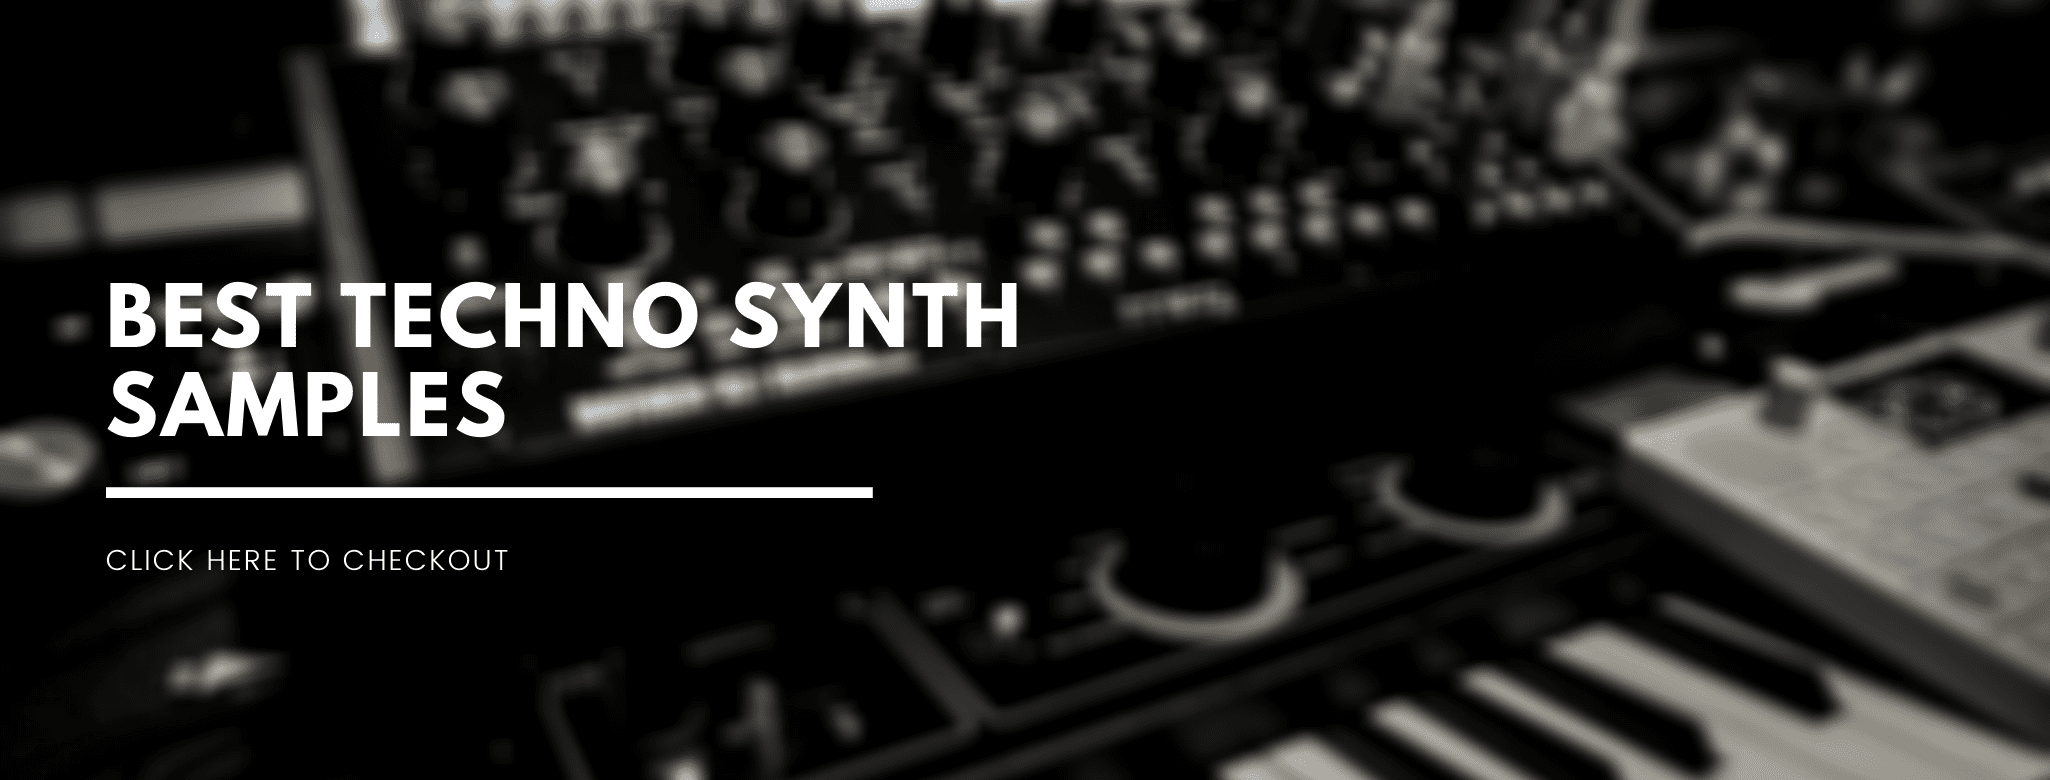 best techno synth samples